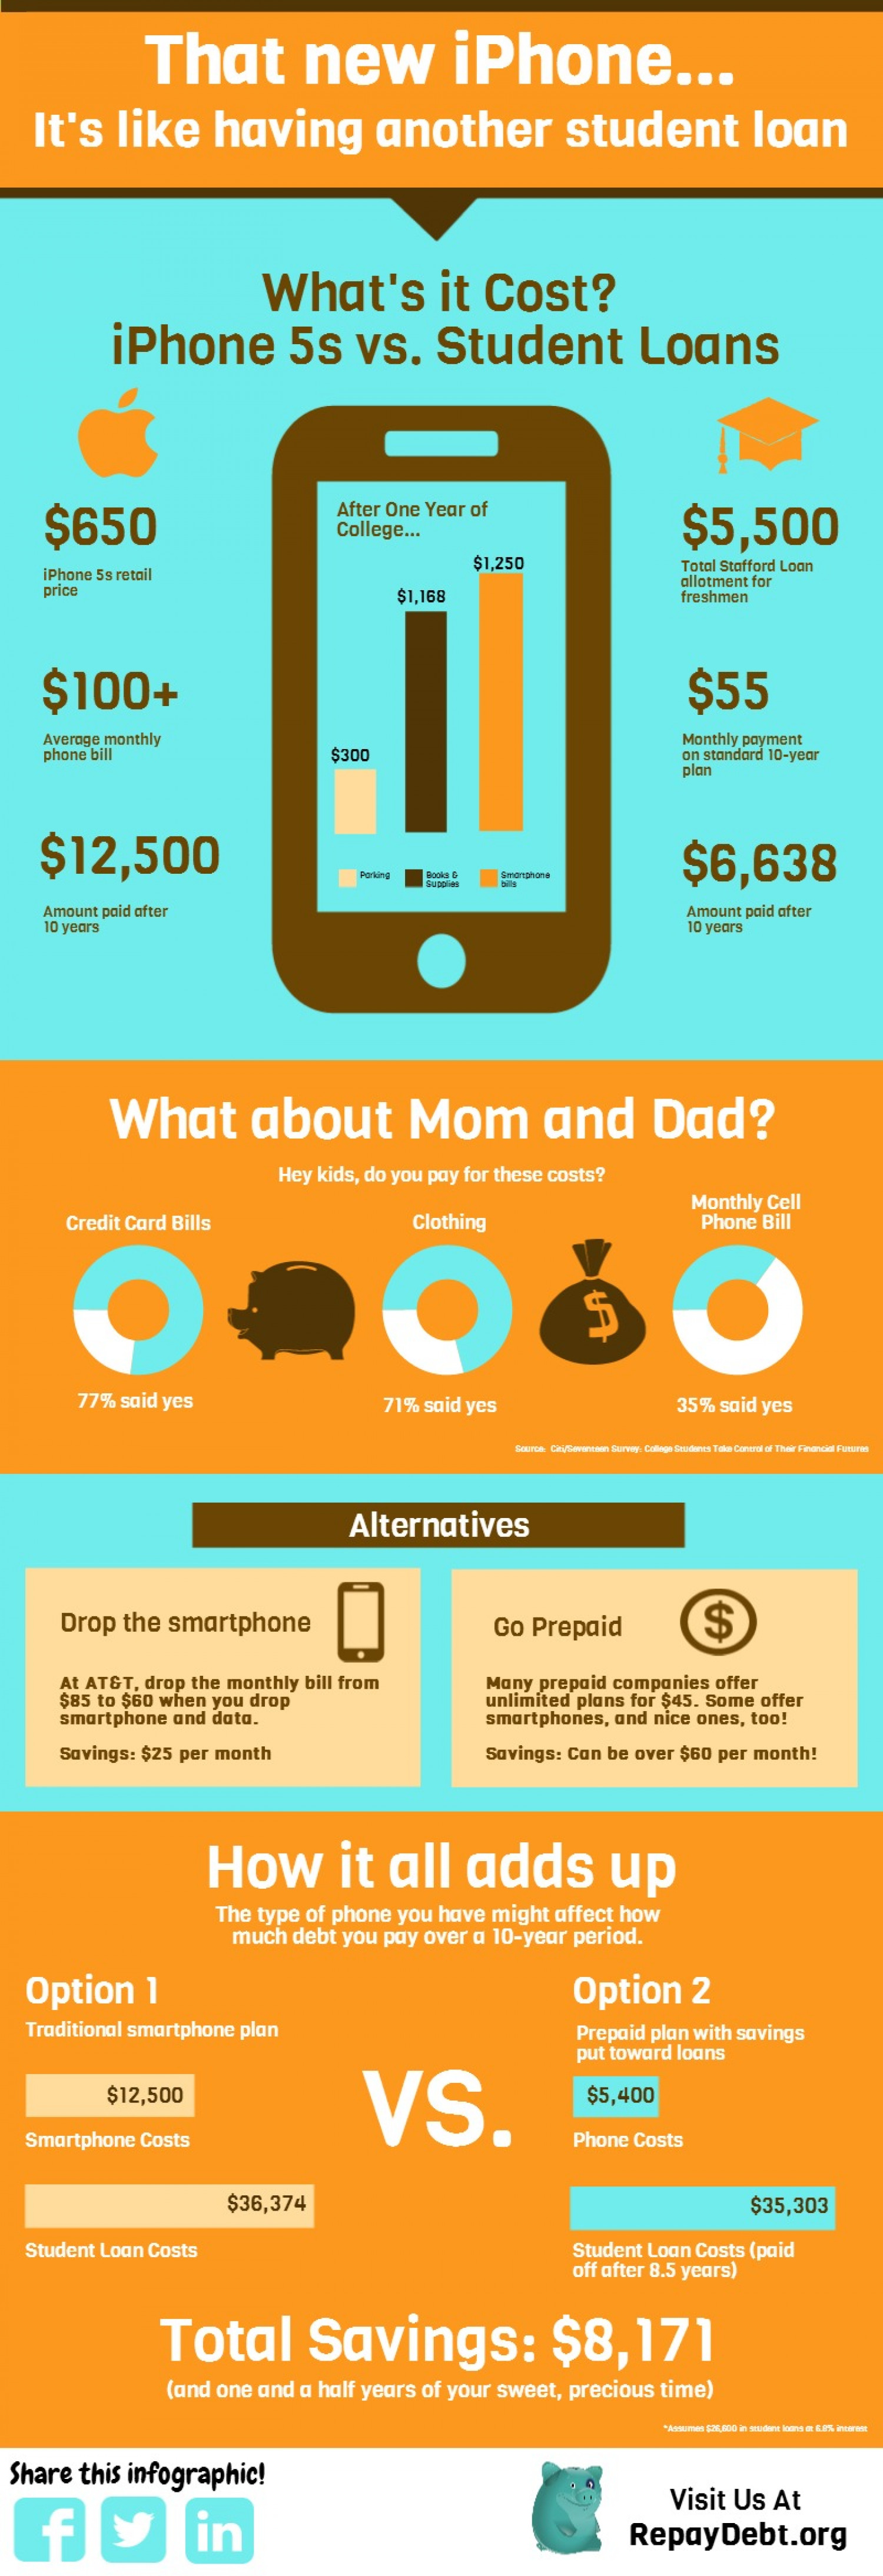 iPhone 5s vs. Student Loans Infographic